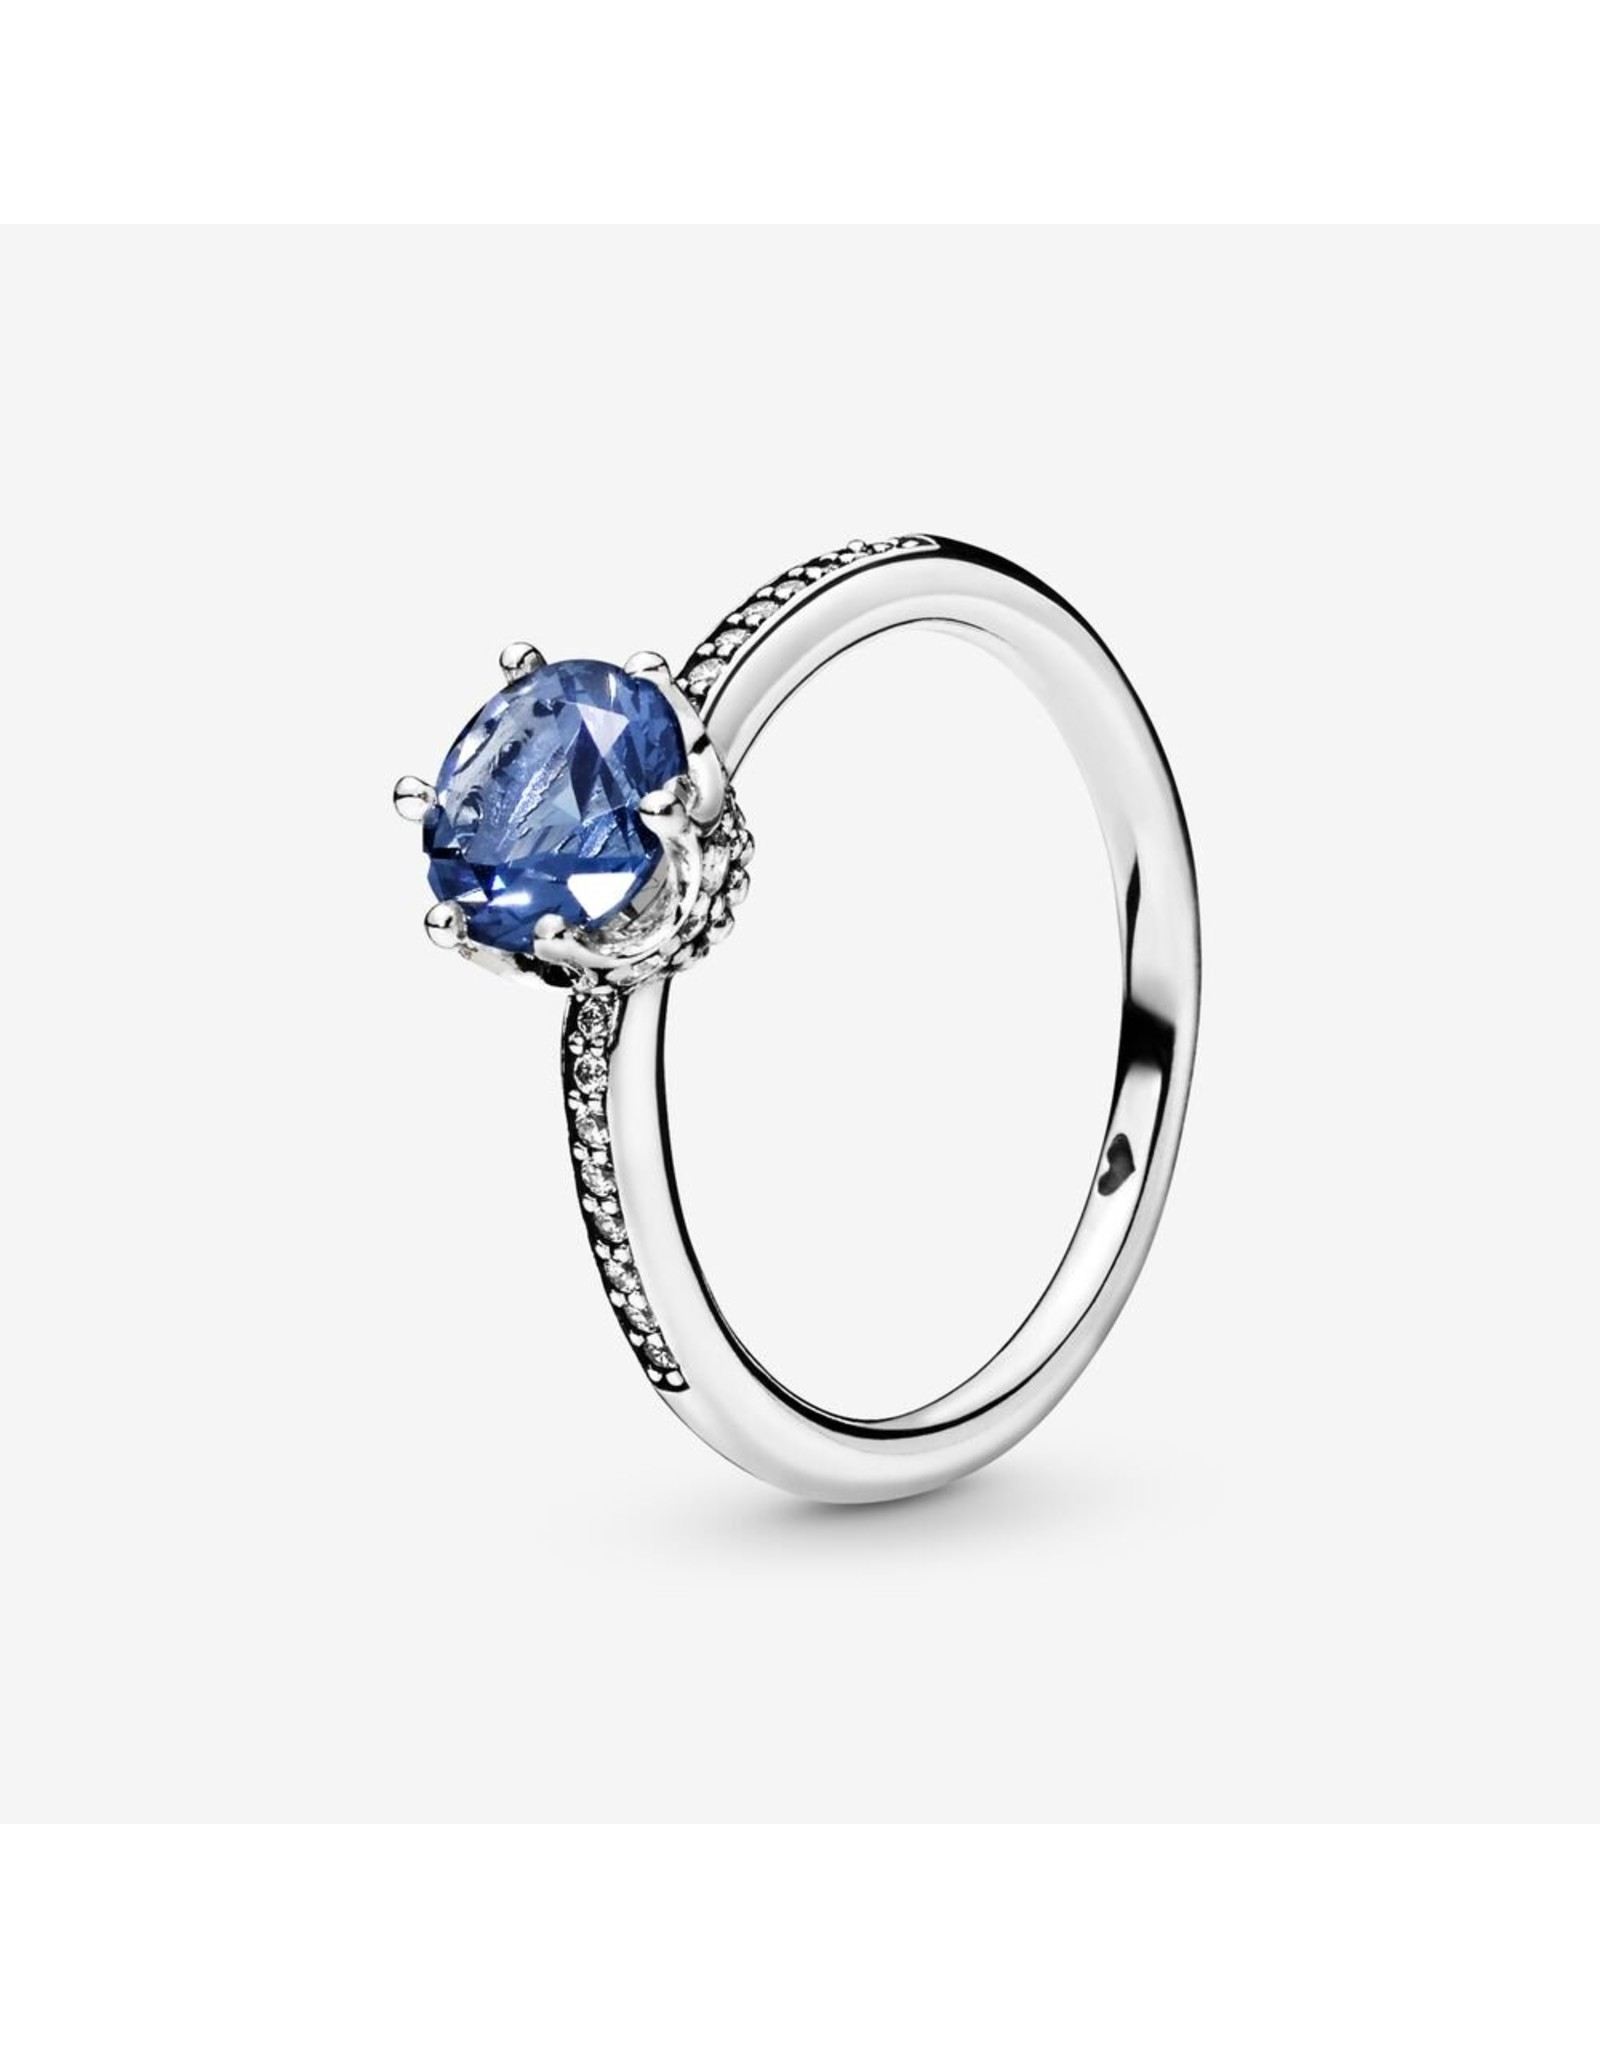 Pandora Pandora Ring, (198289NSWB) Blue Sparkling Crown